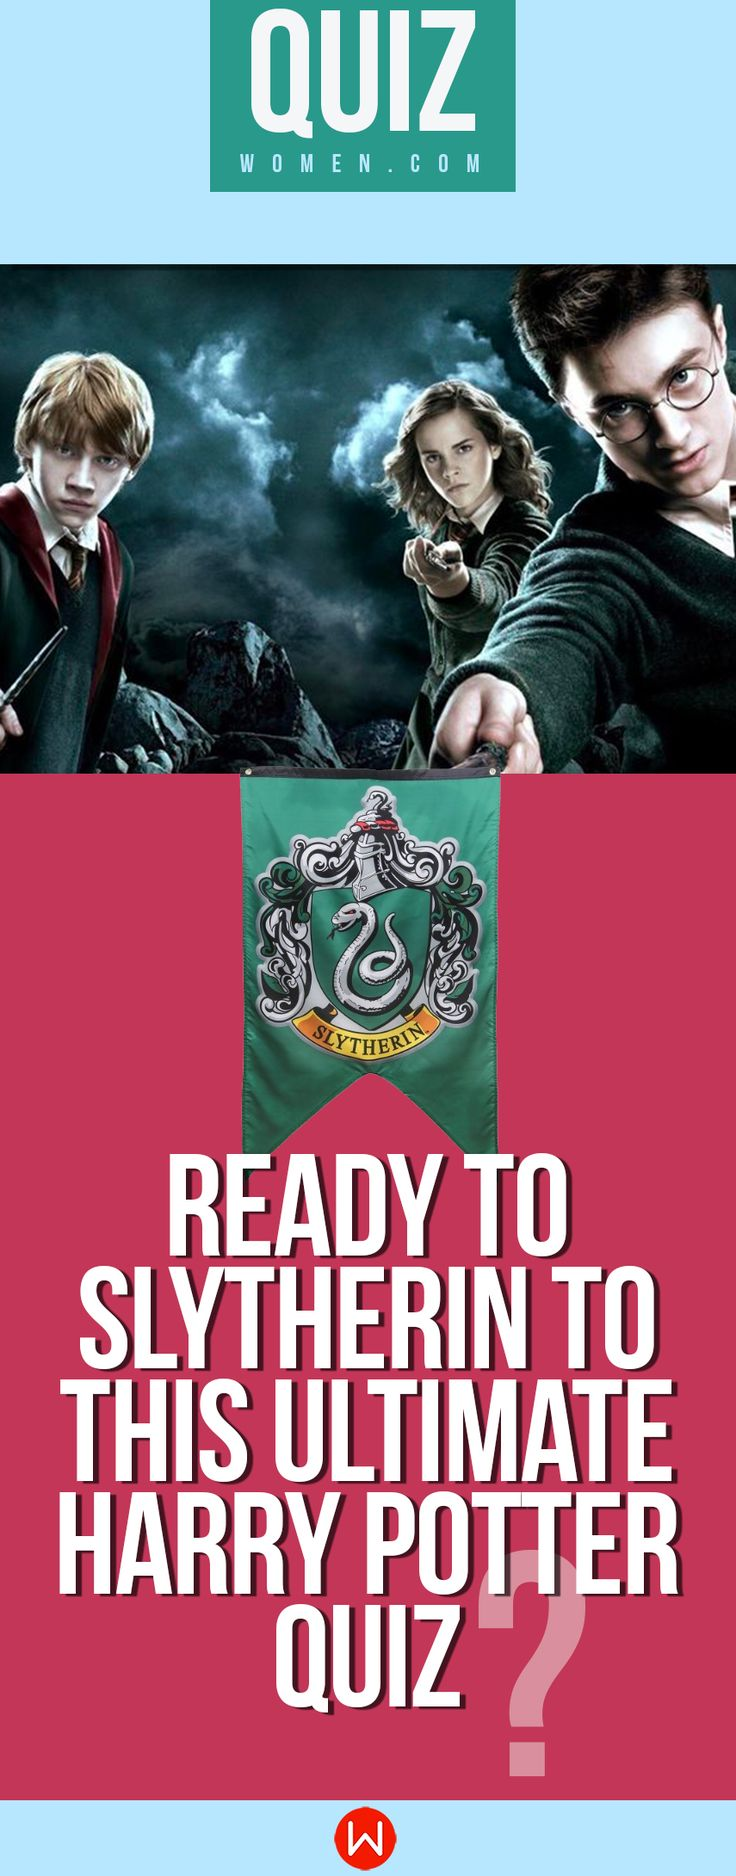 Quiz: Are you the ultimate Harry Potter fan? Prove it! HP quiz, Harry Potter Trivia, Hogwarts, Wizarding World Quiz, Buzzfeed Quizzes, Playbuzz Quiz, Hogwarts Houses, Fandom Quizzes #HermioneGranger, #RonWeasley, #JKRowling